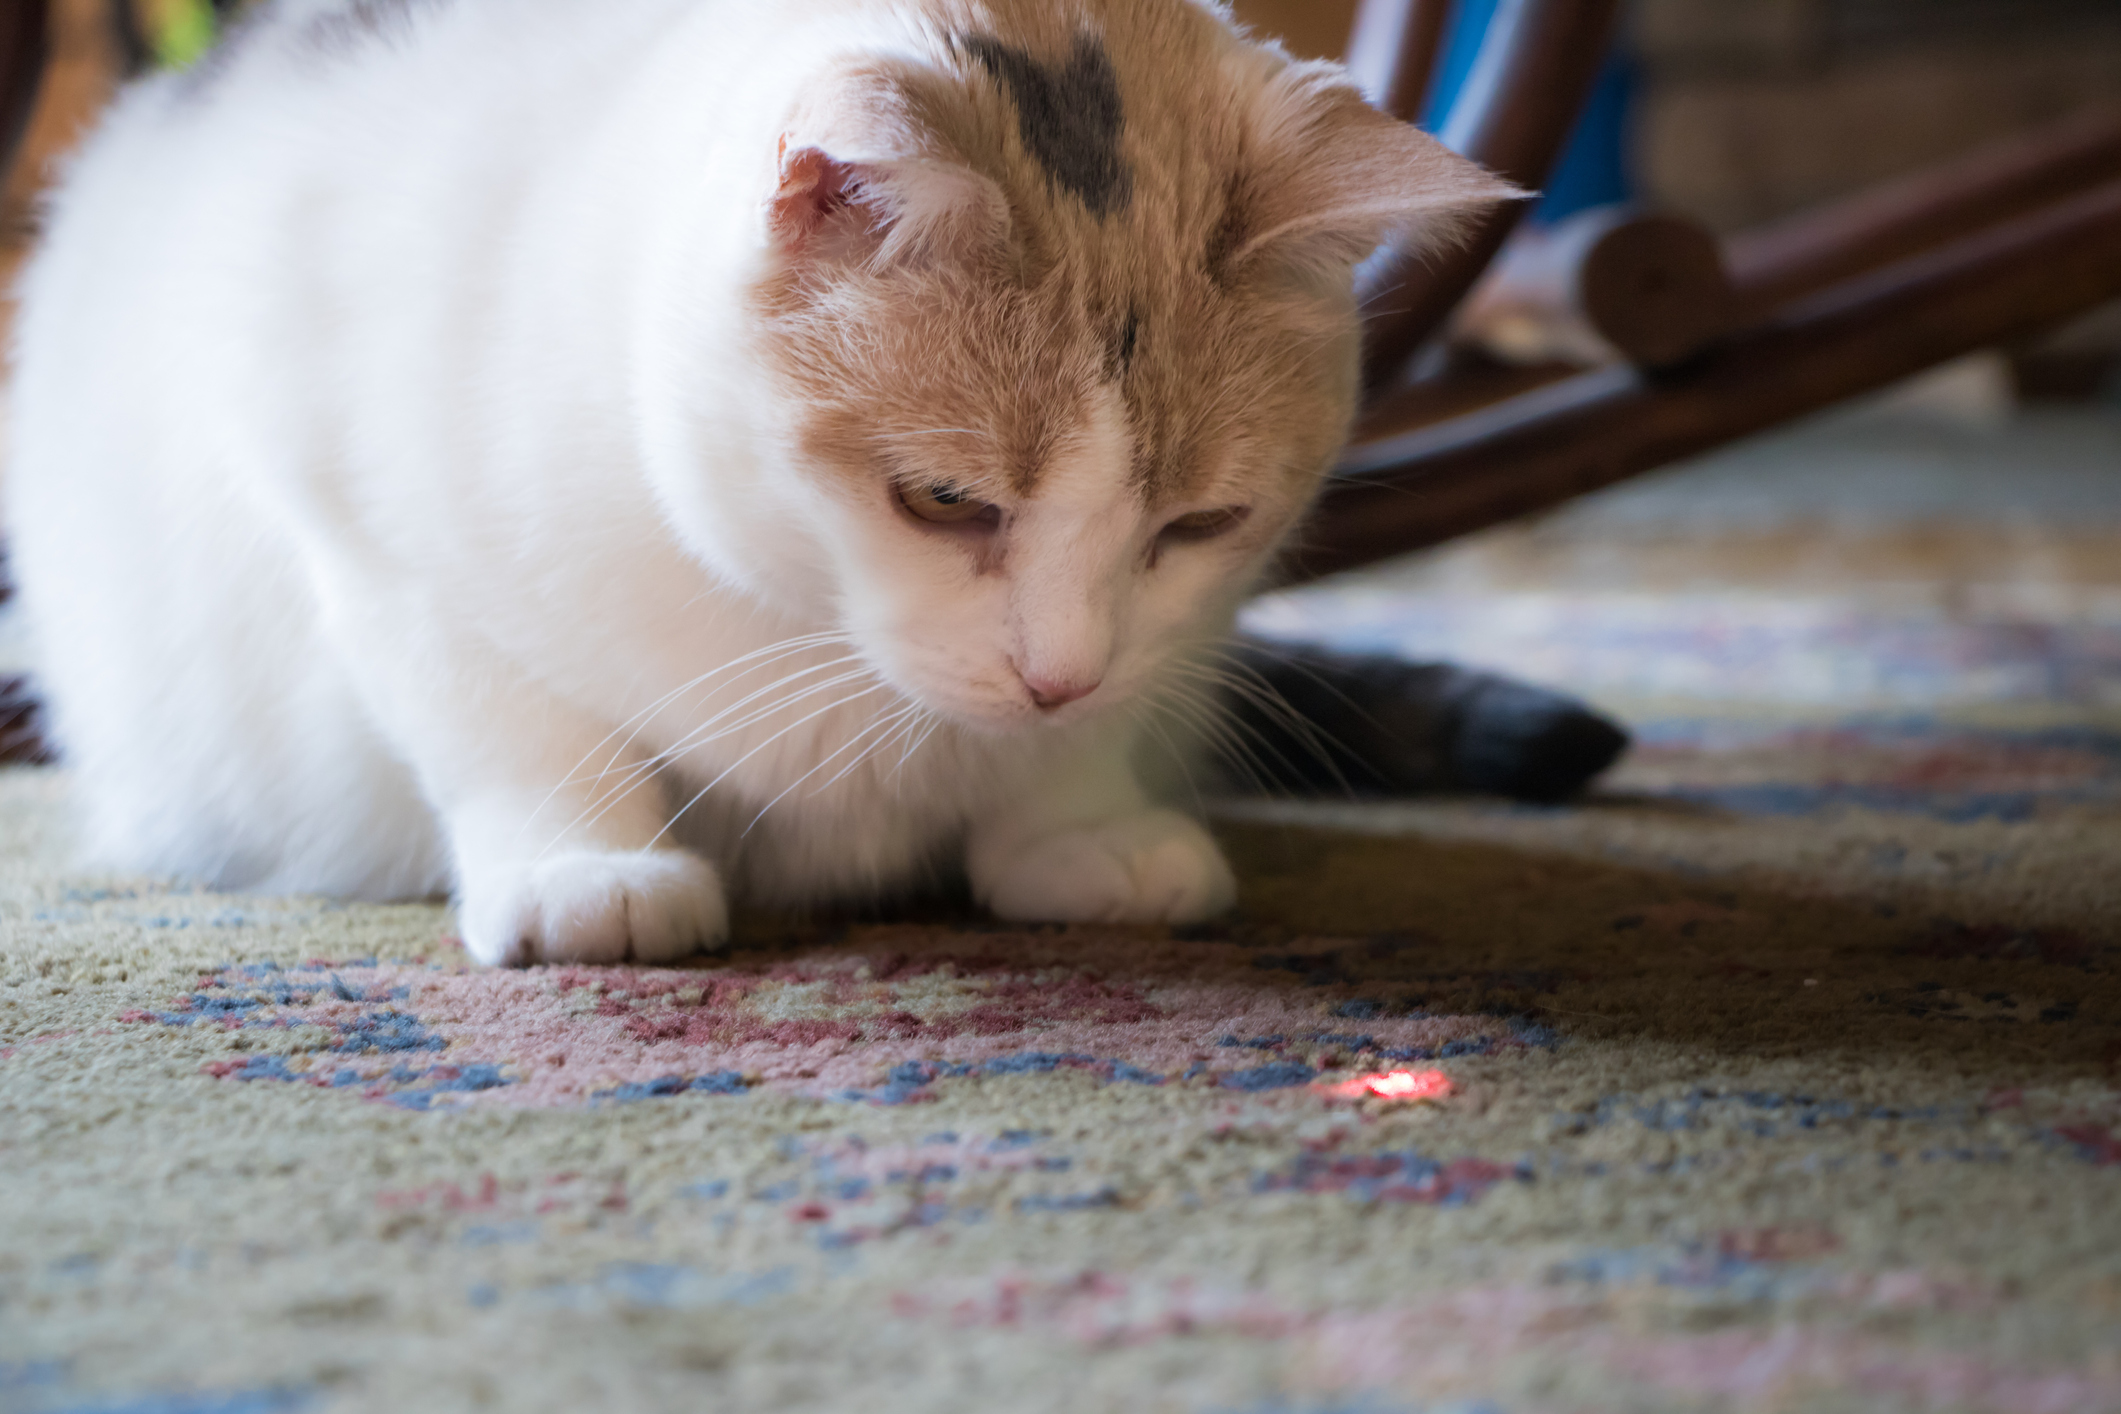 That laser pointer the cat loves to play with can permanently damage your eyes